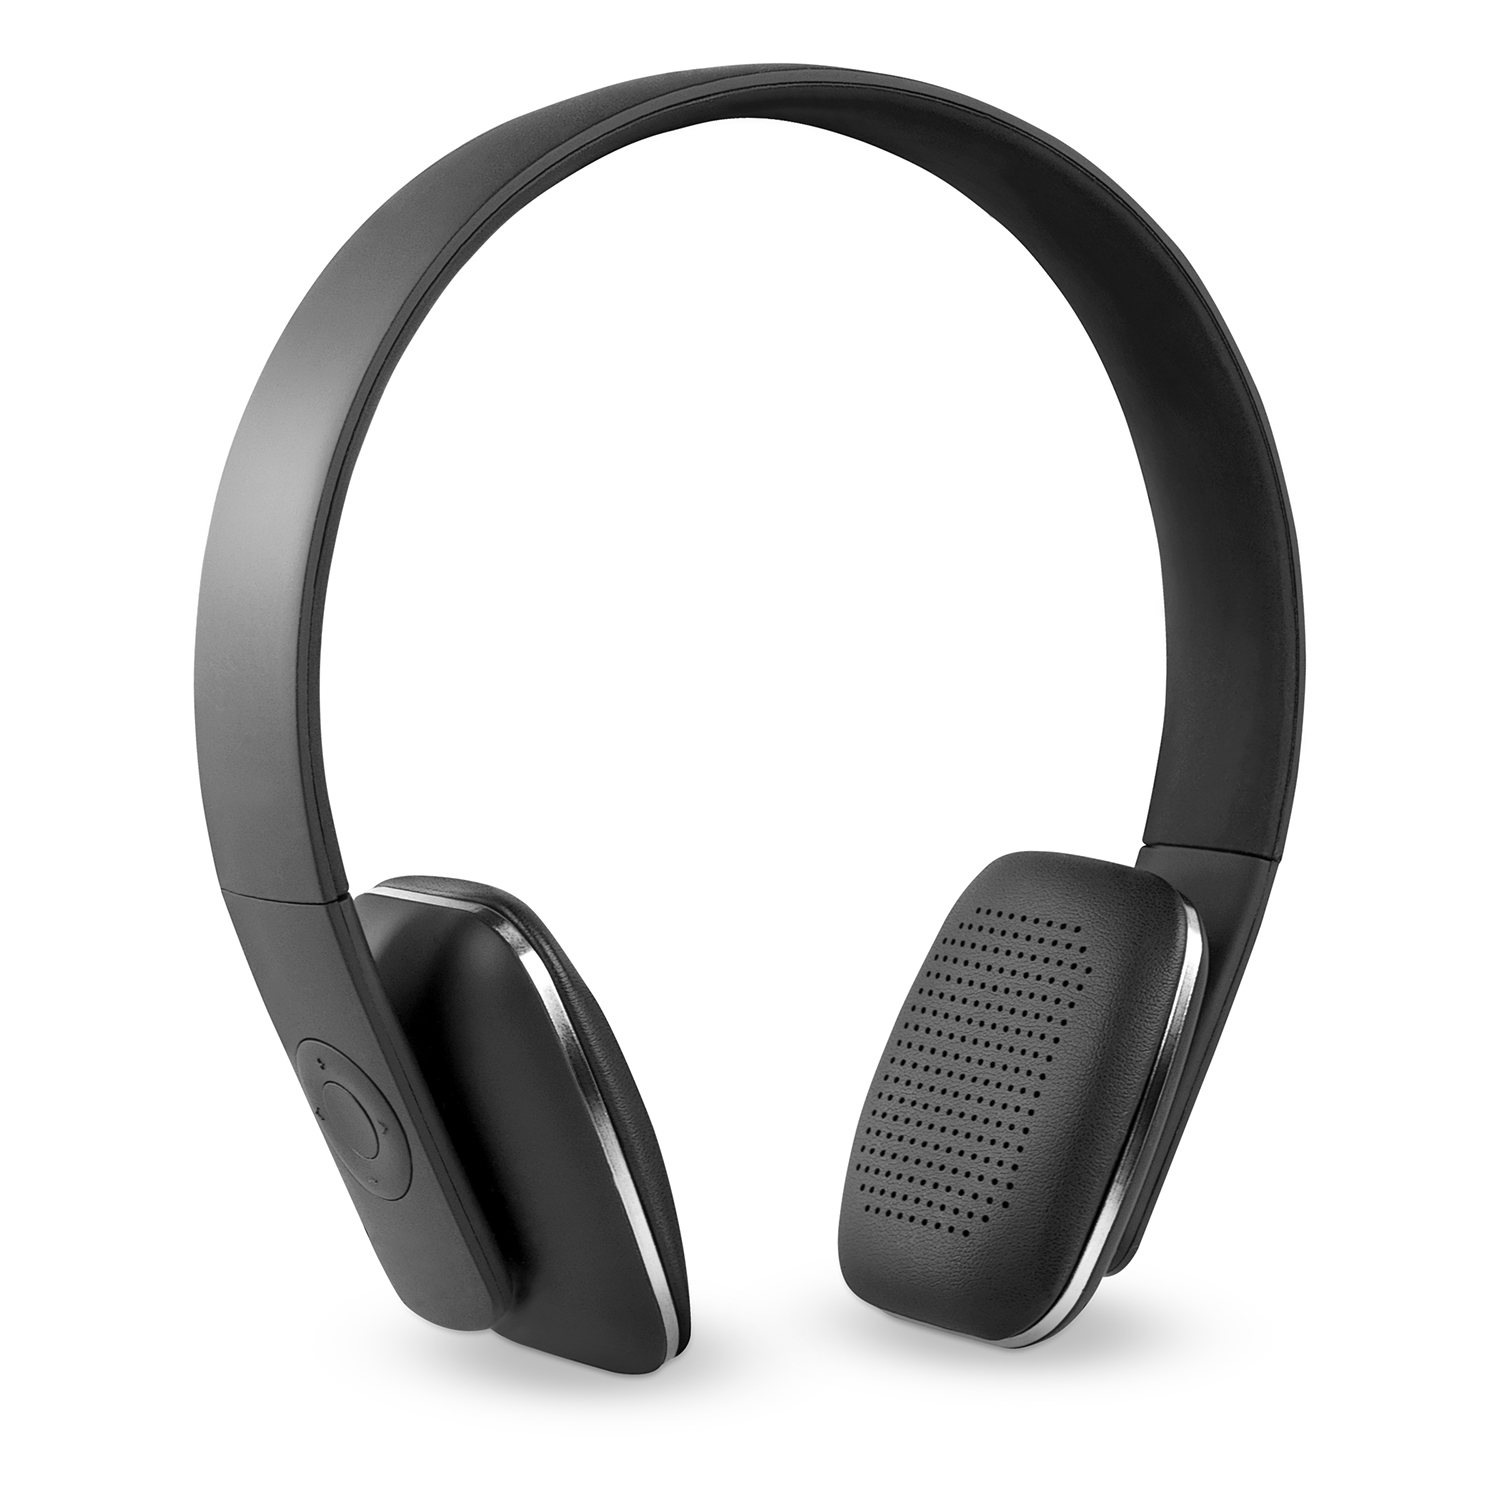 Rechargeable Wireless Bluetooth Headphones with Rubberized finish